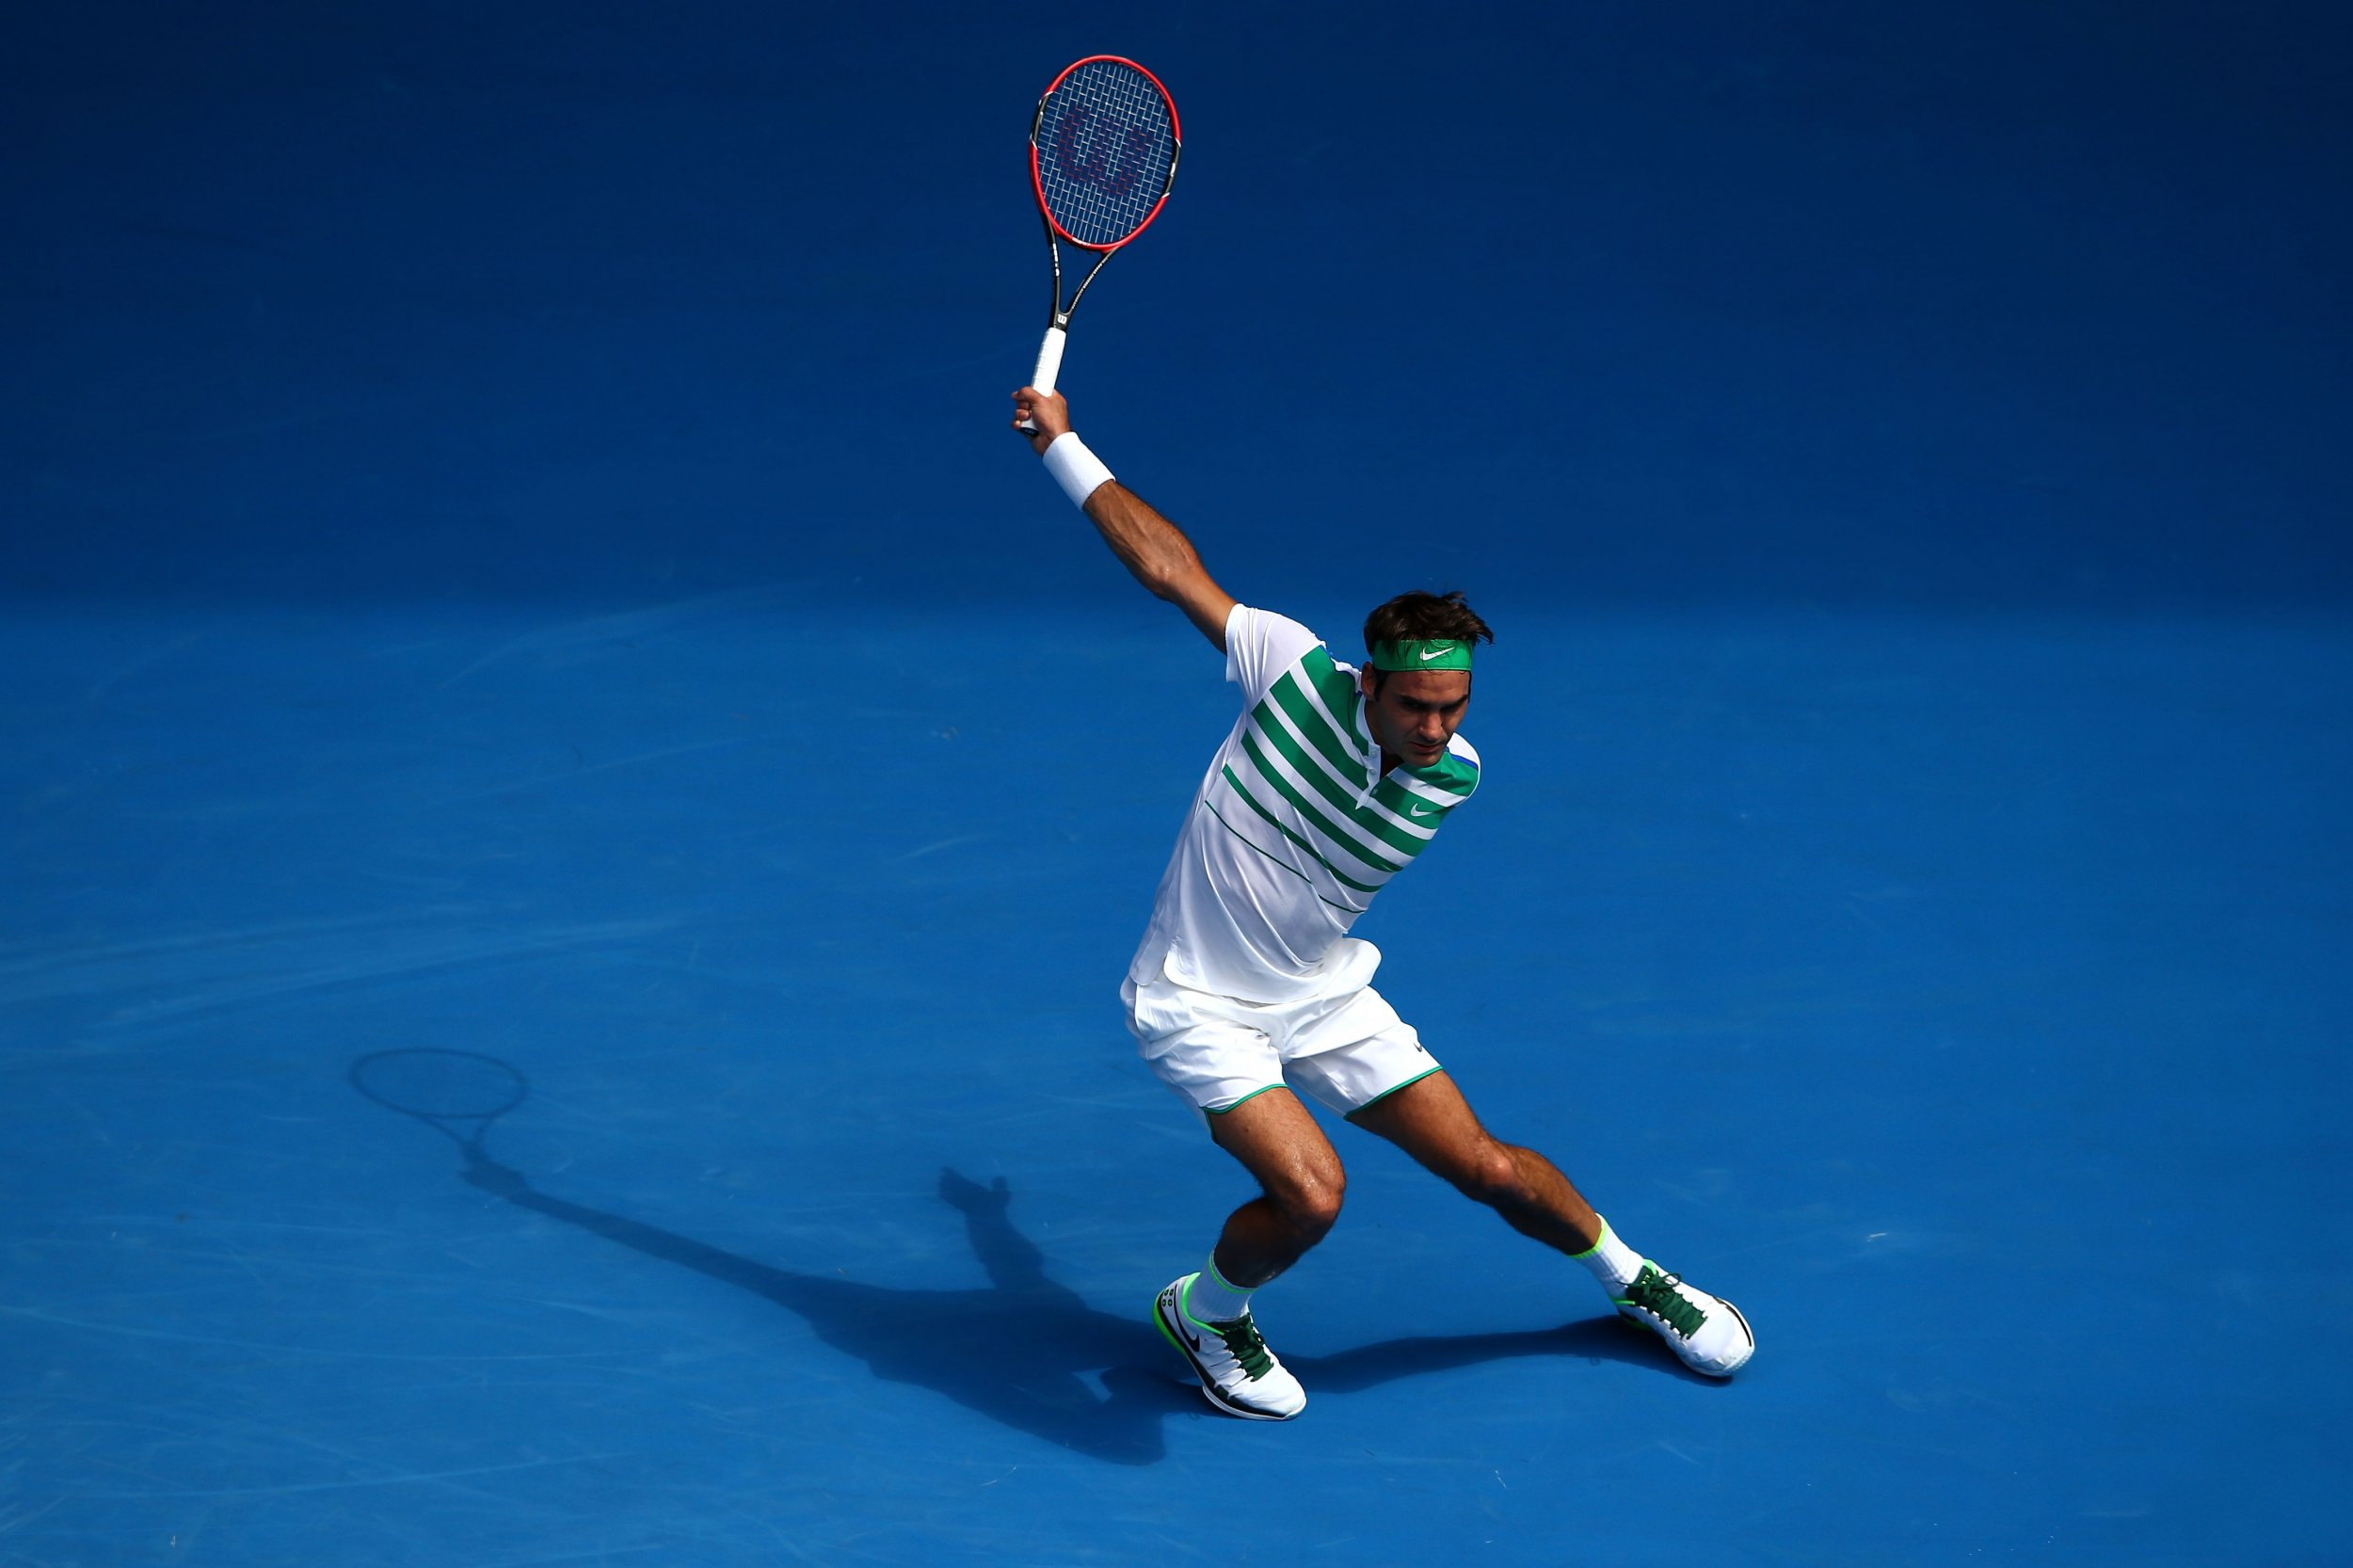 Australian Open Roger Federer Children Unlikely Pursue Tennis Careers ...